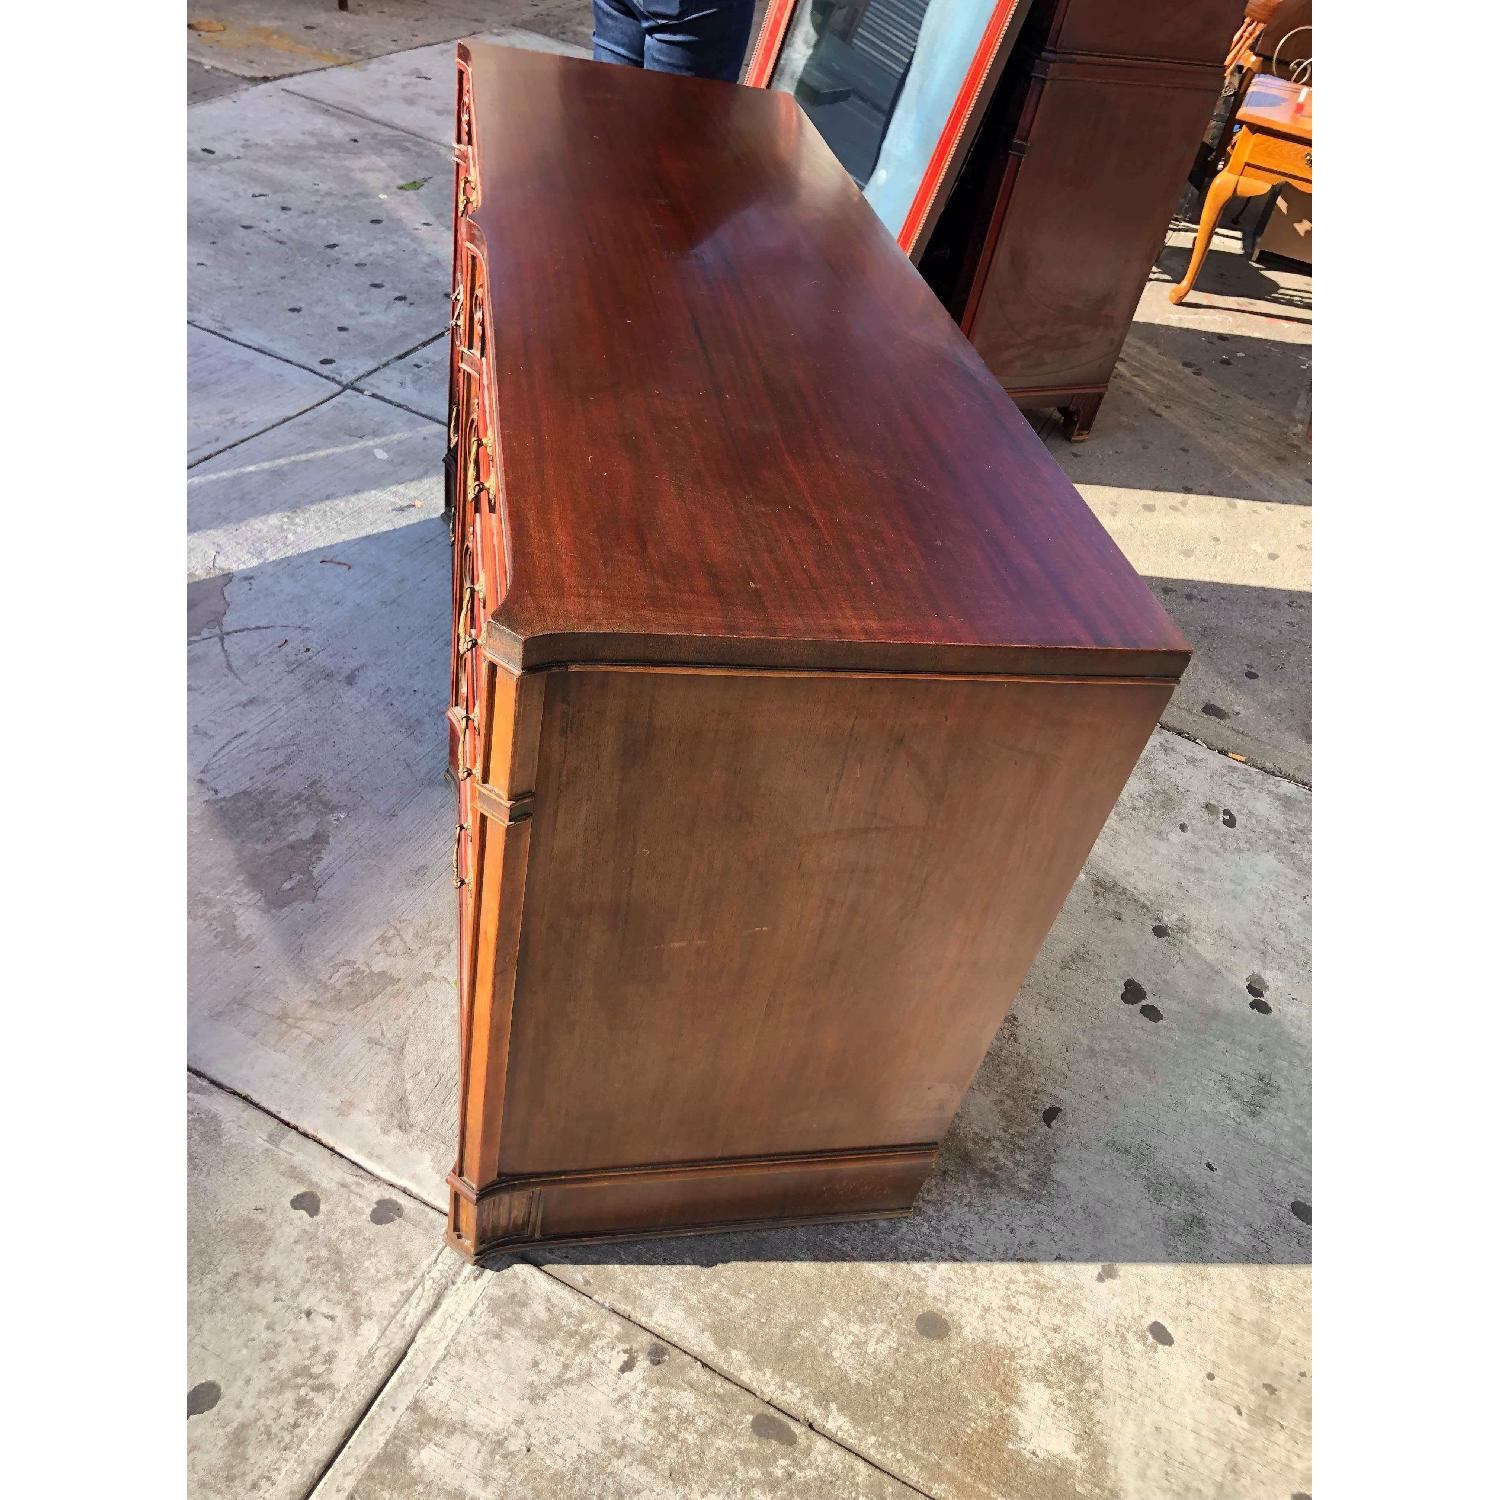 Antique 1930s Cherry Wood Leather Front 8 Drawer Dresser - image-3